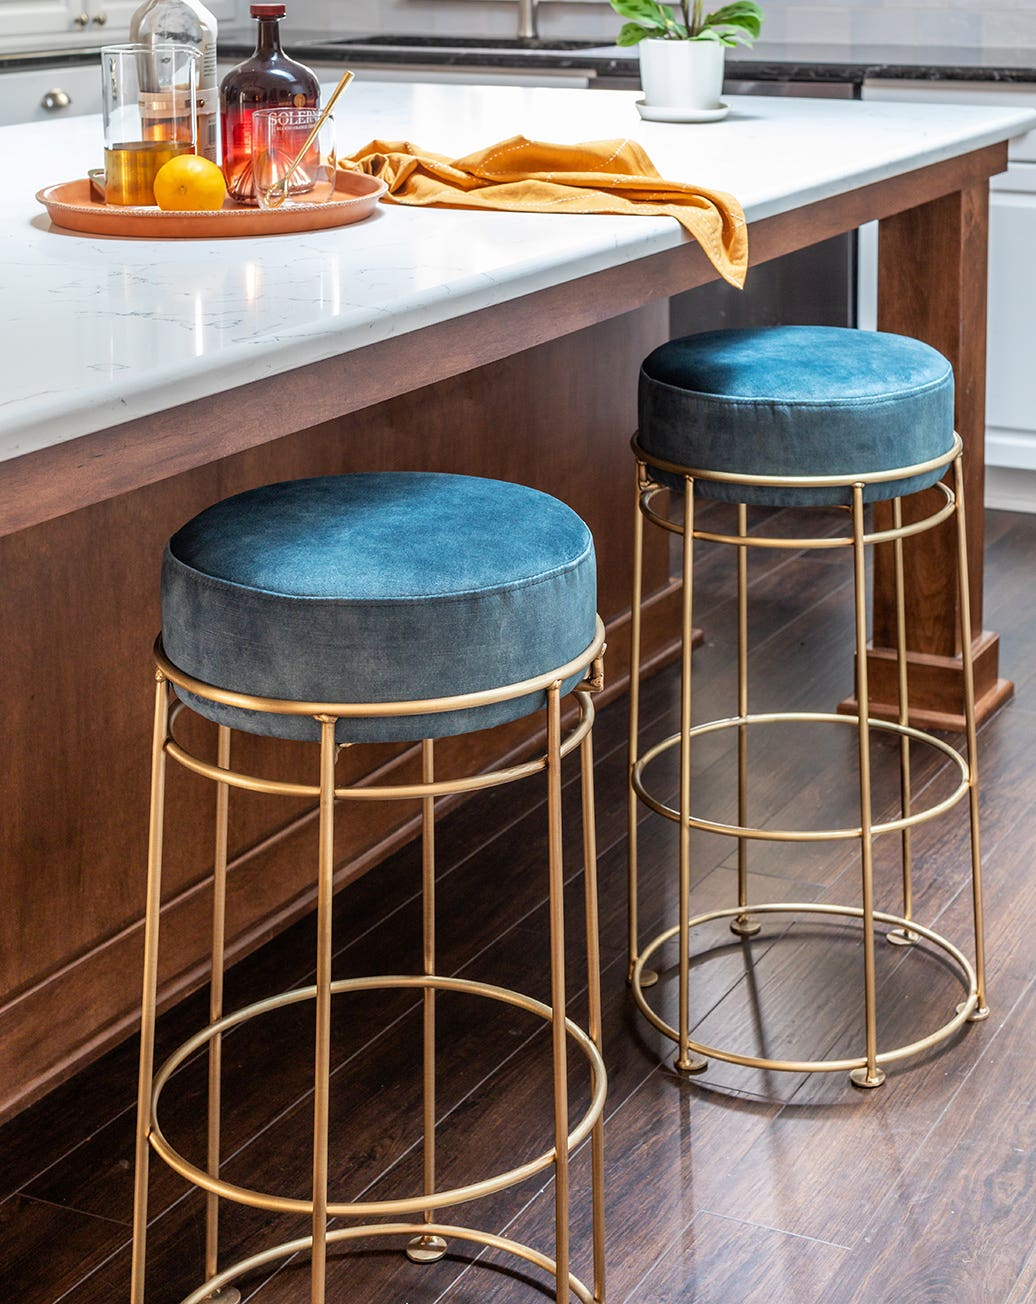 Three Industry West Bell bar stools in black at a countertop